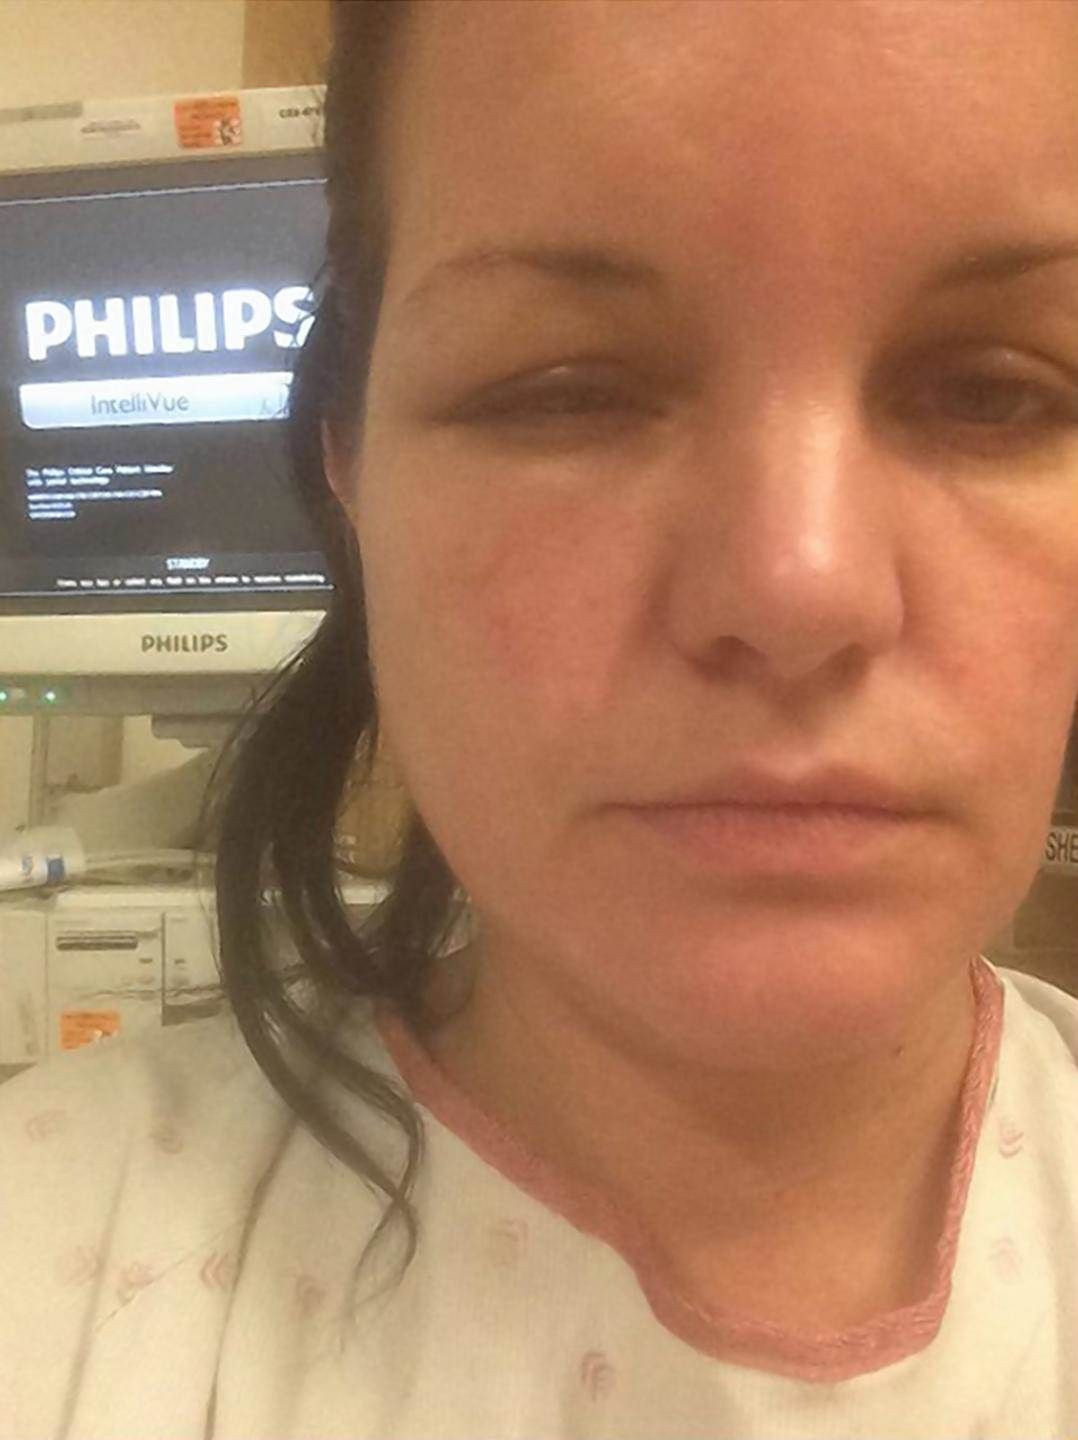 Ncis Star Pauley Perrette Lands In Hospital After Severe Allergic Reaction To Hair Dye Hair Dye Allergy Dyed Hair Black Hair Dye